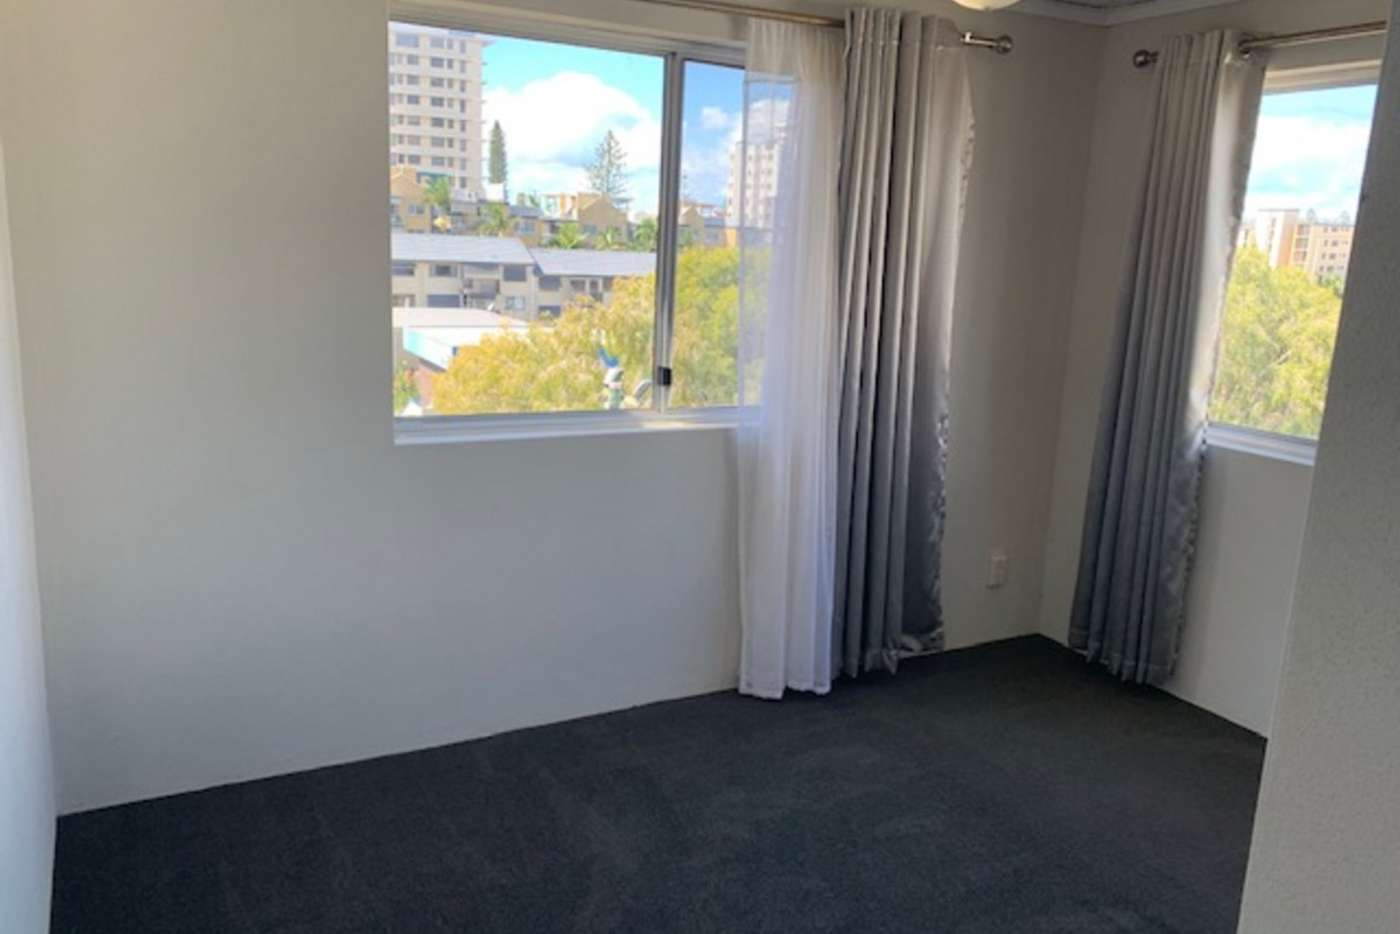 Sixth view of Homely unit listing, 10/1 Sykes Avenue, Kings Beach QLD 4551